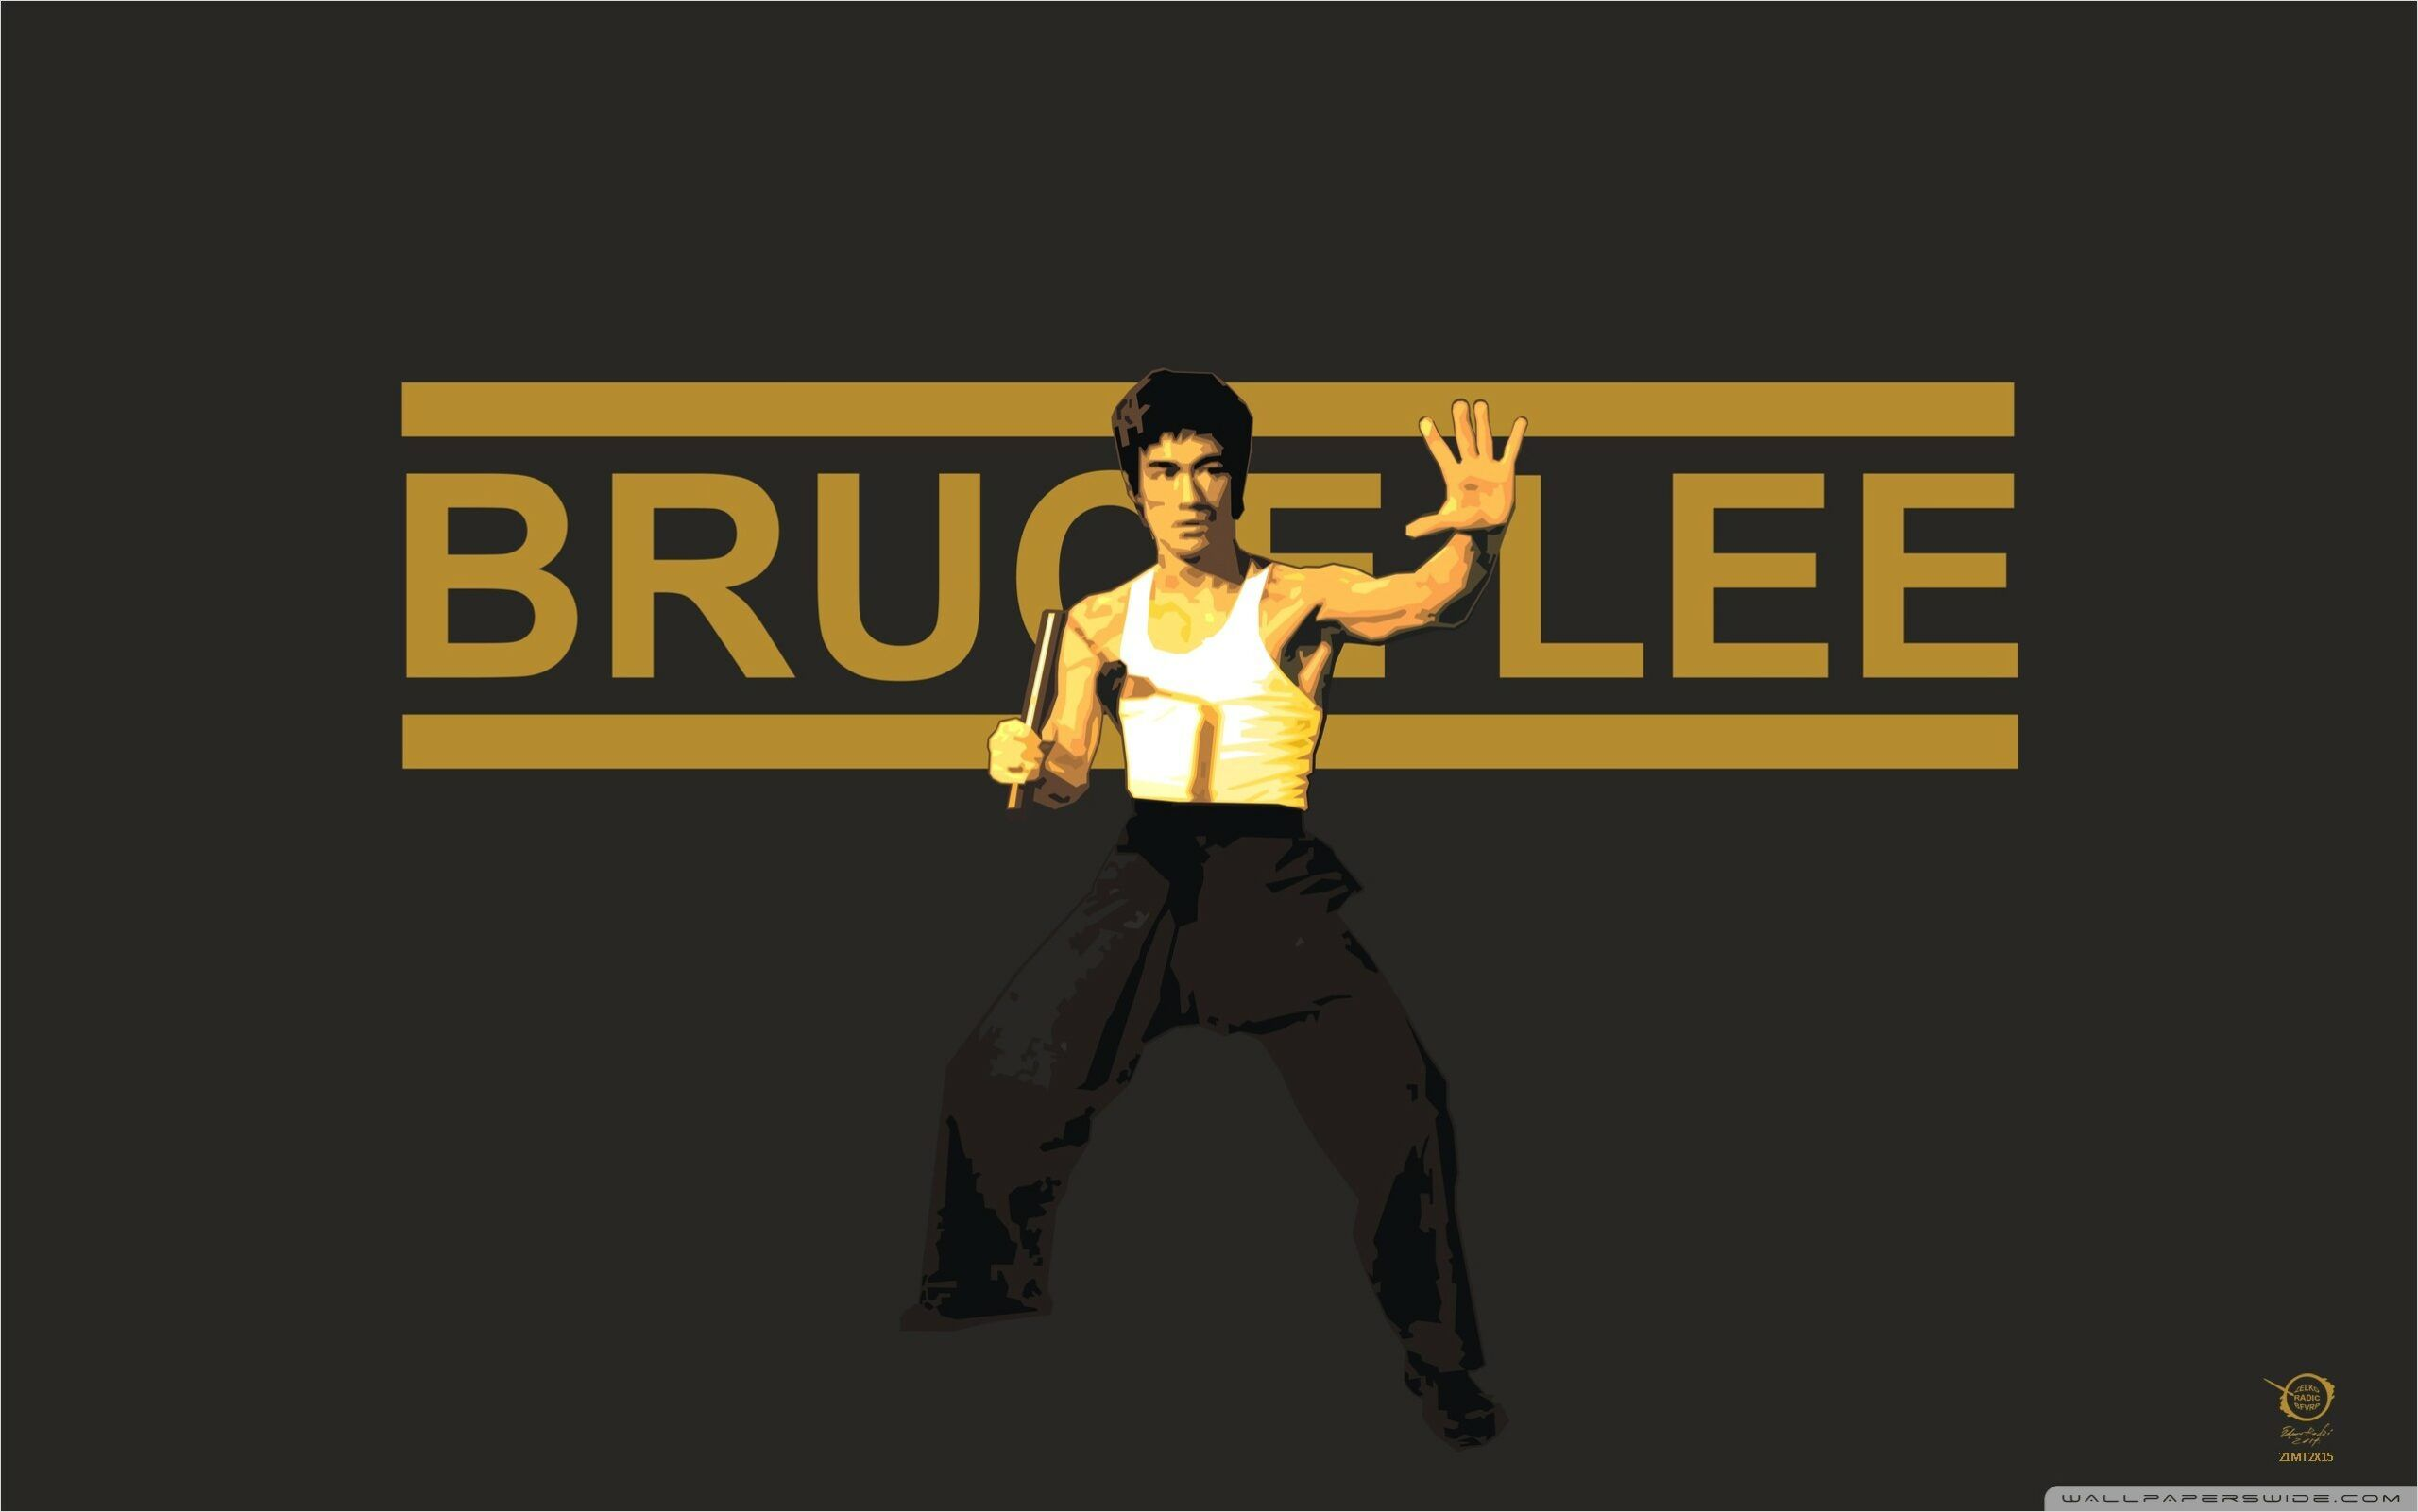 Bruce Lee Wallpaper 4k In 2020 Bruce Lee Cool Animations Hd Backgrounds